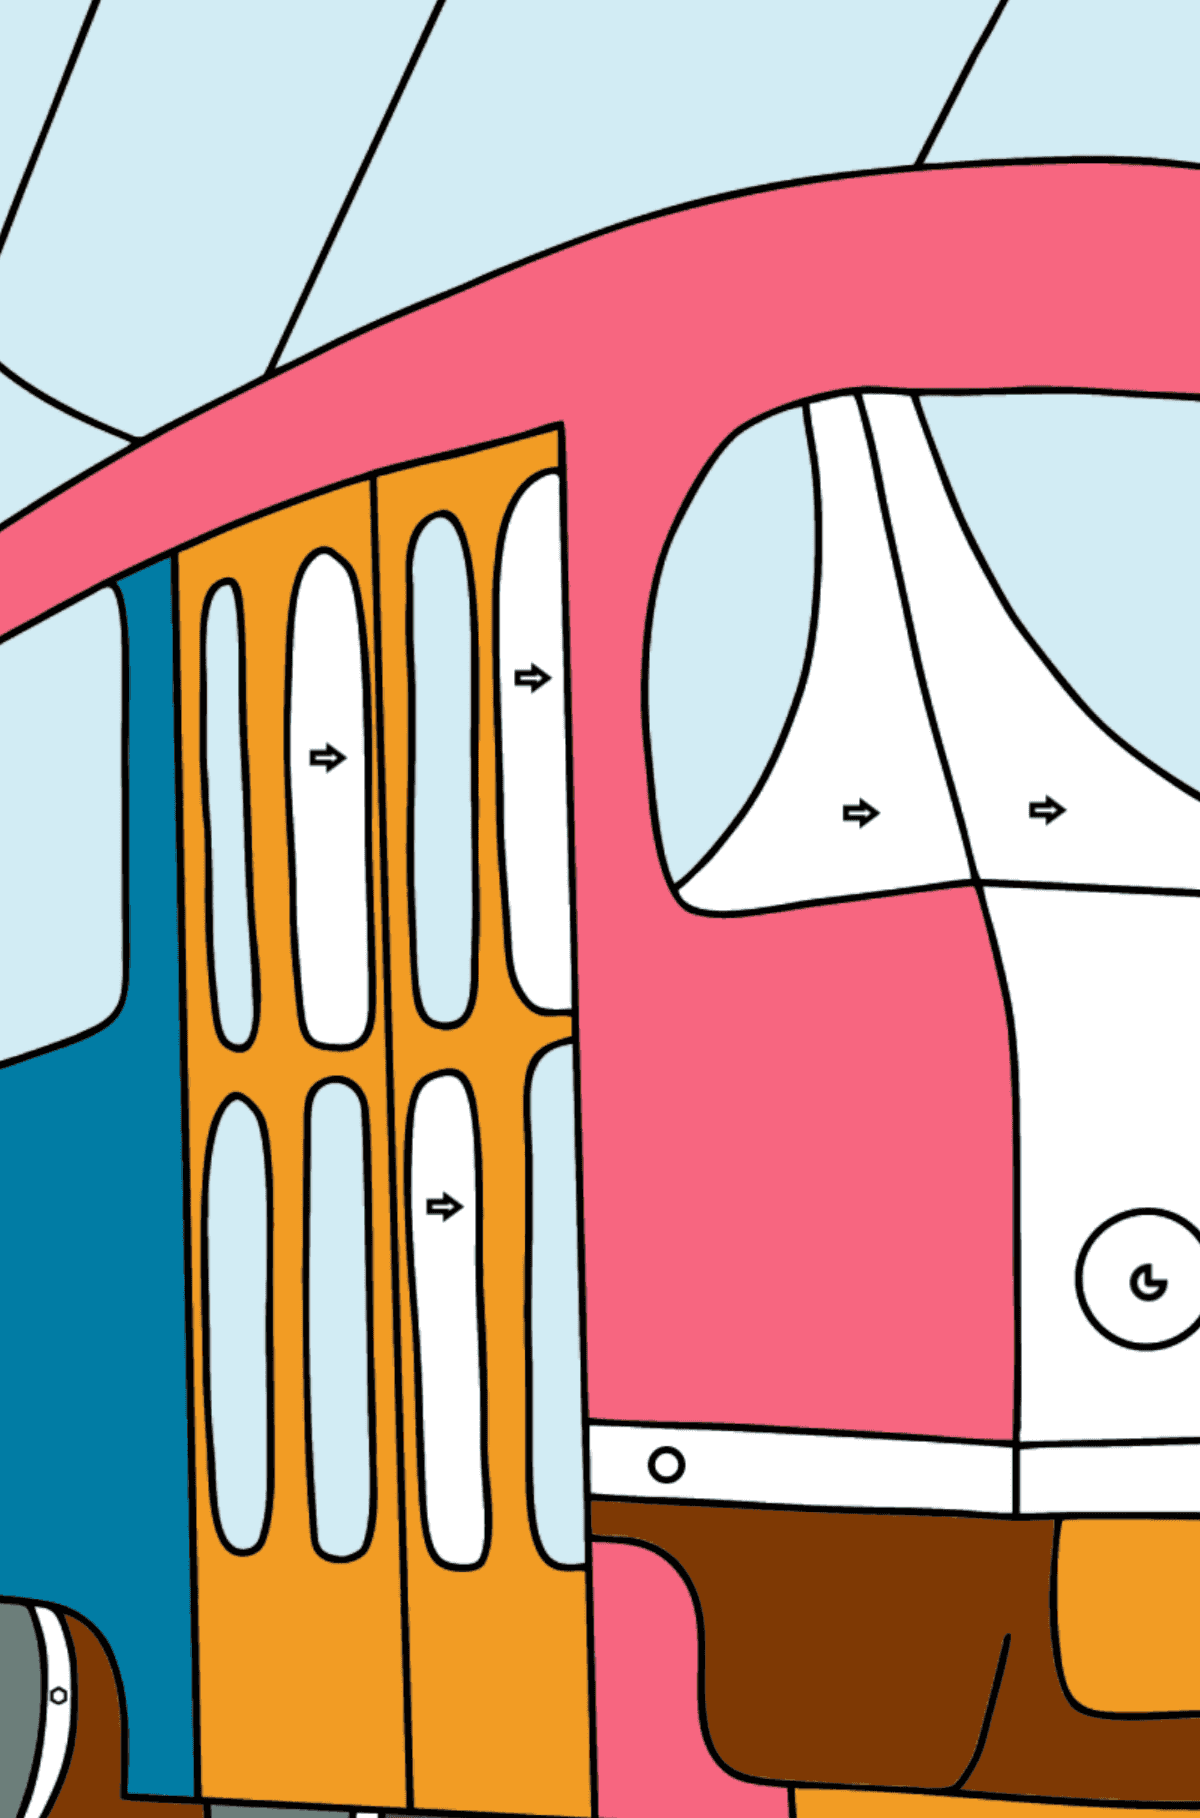 A Tram Coloring Page - Print fo free - Coloring by Geometric Shapes for Kids